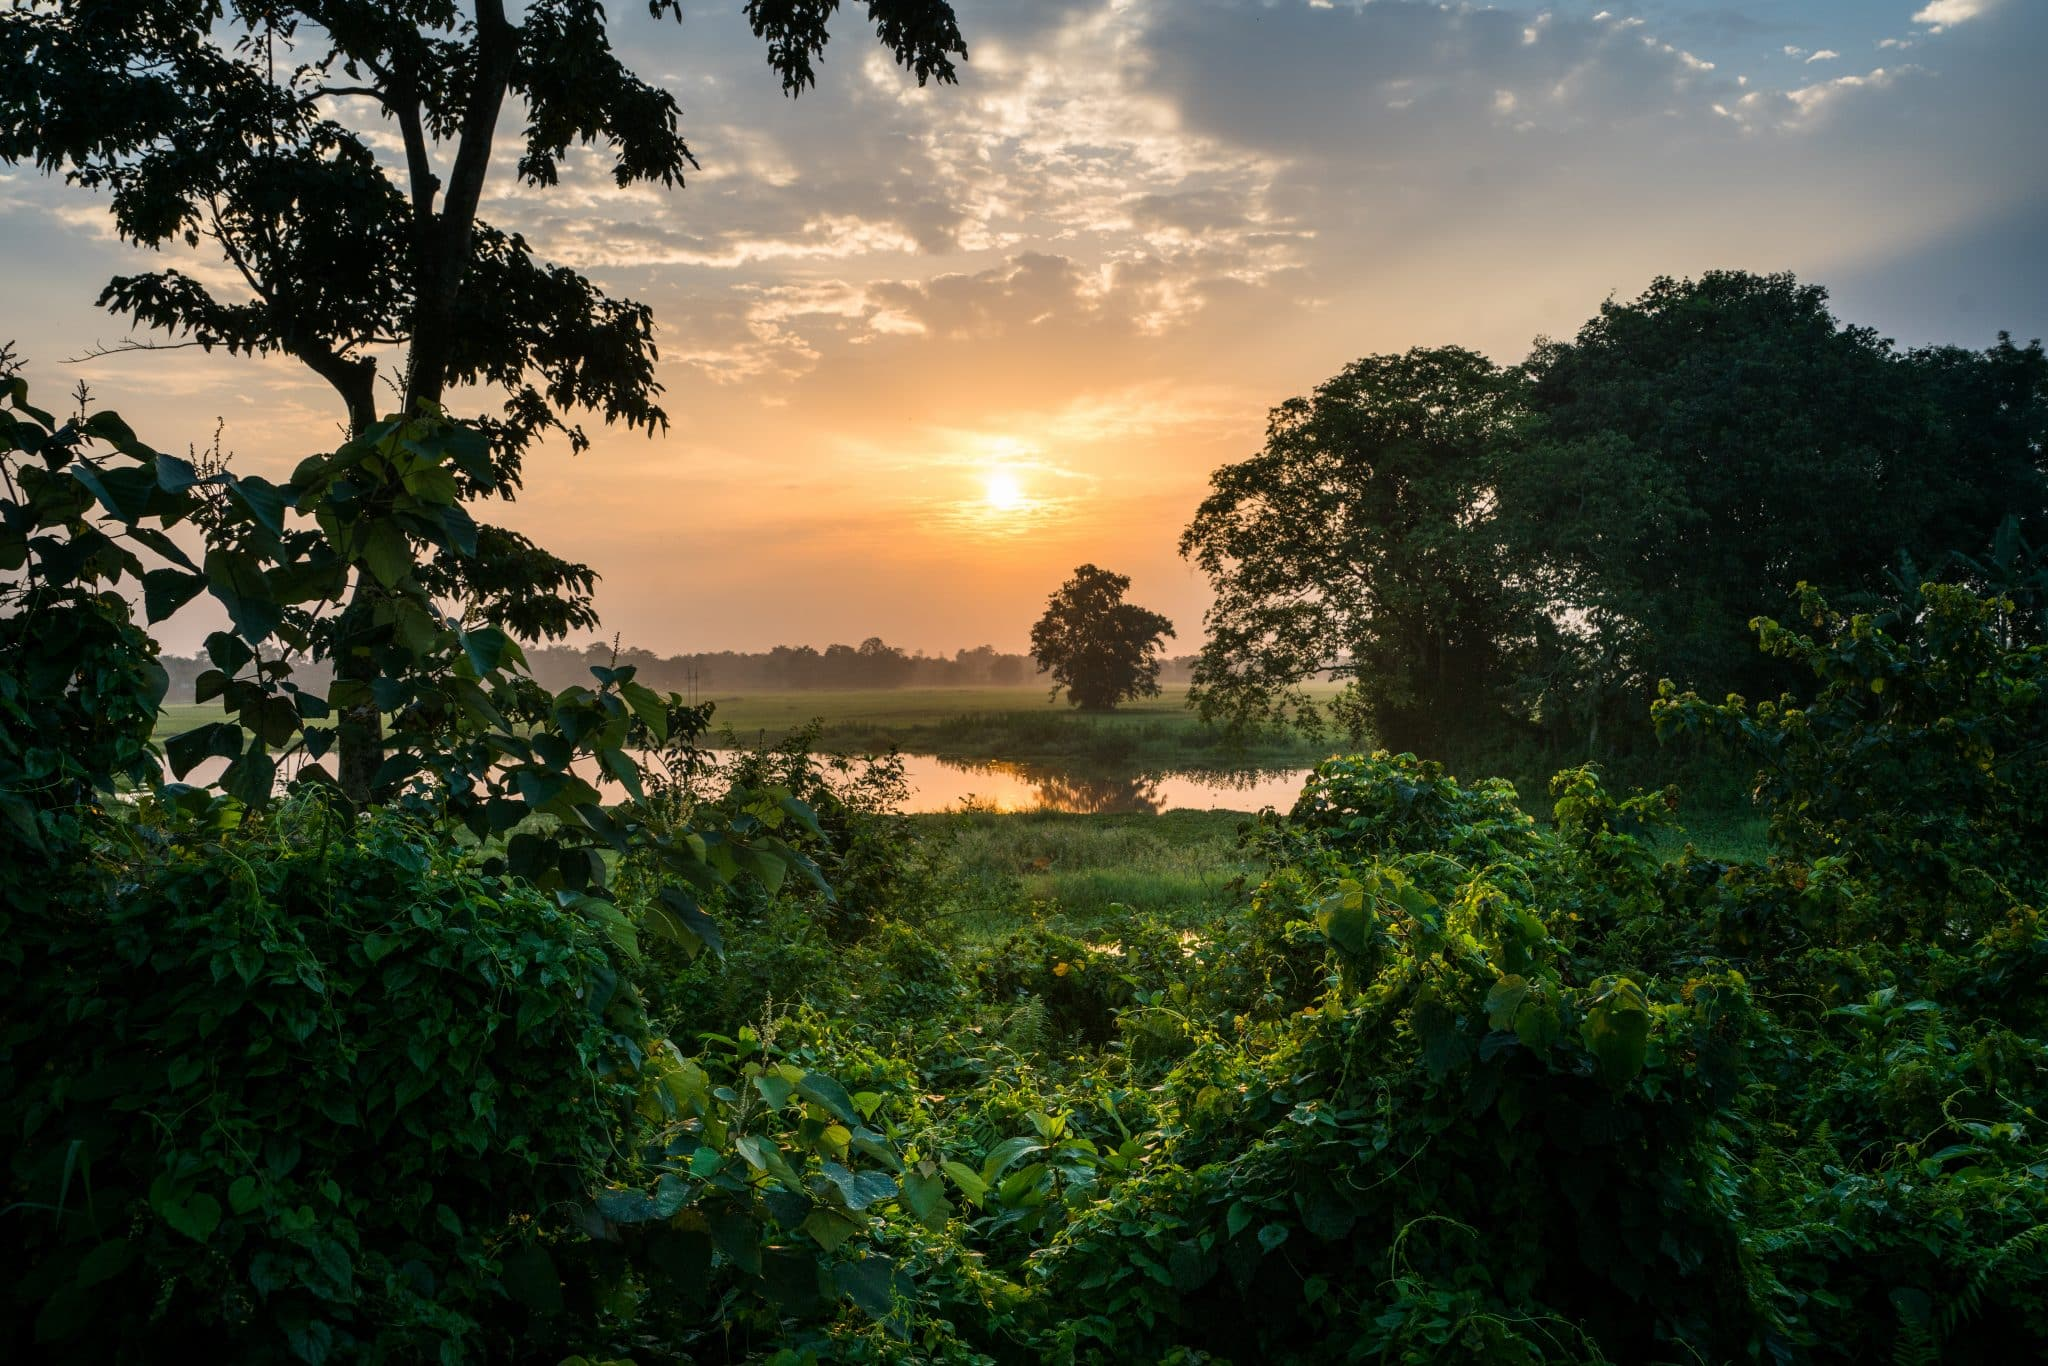 Golden sunrise over Majuli river island in Assam, India - Lost With Purpose travel blog